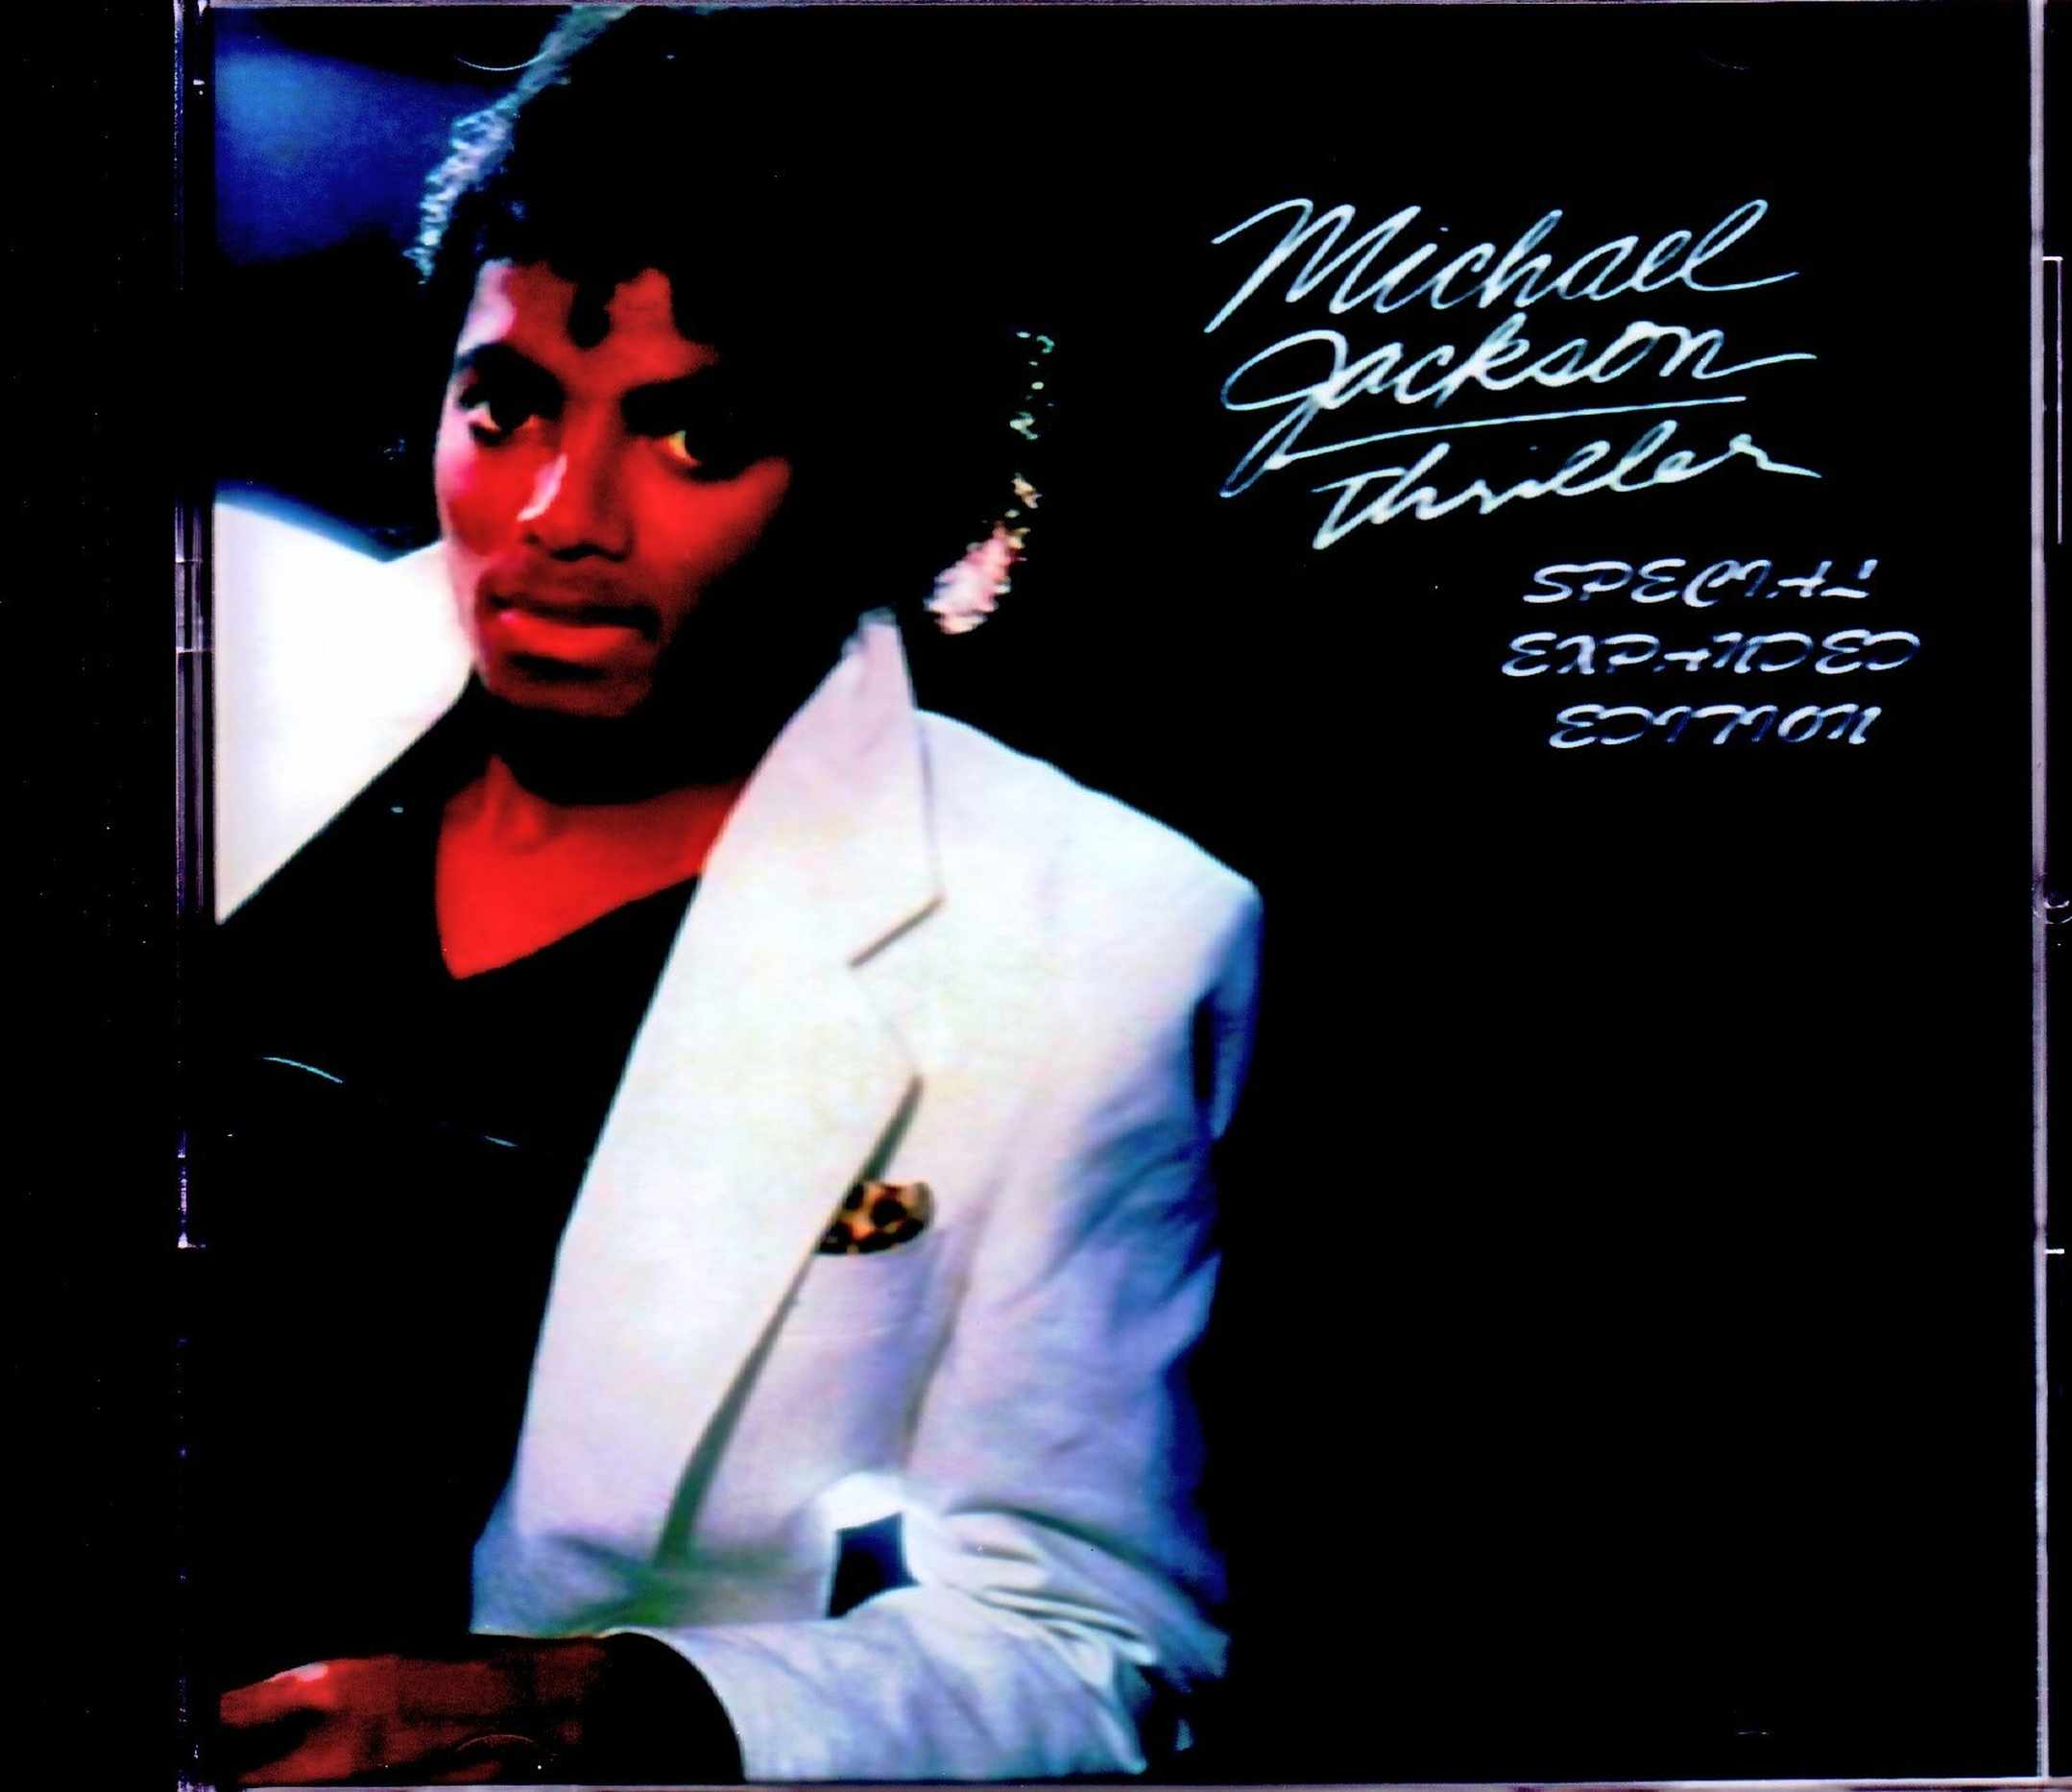 Michael Jackson マイケル・ジャクソン/スリラー Thriller Special Expanded Version